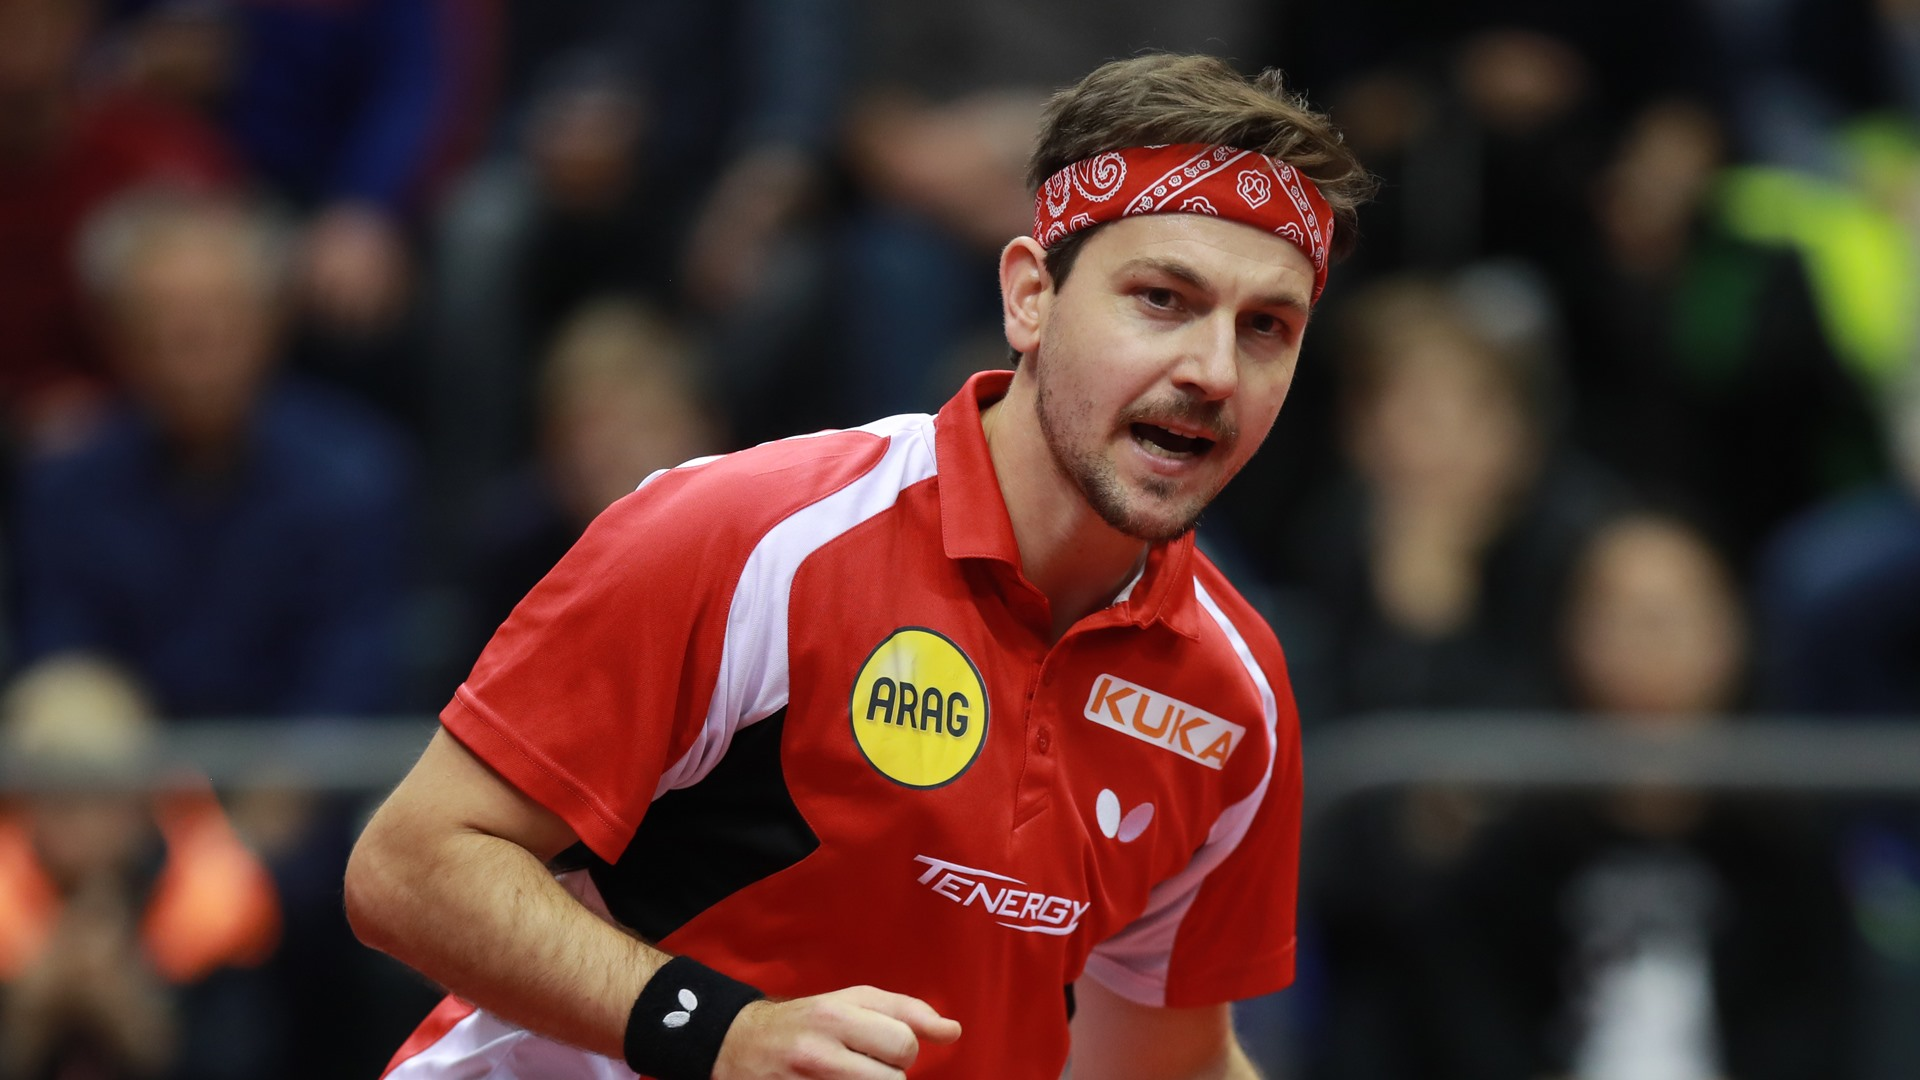 12 years on can Timo Boll reclaim title glory?